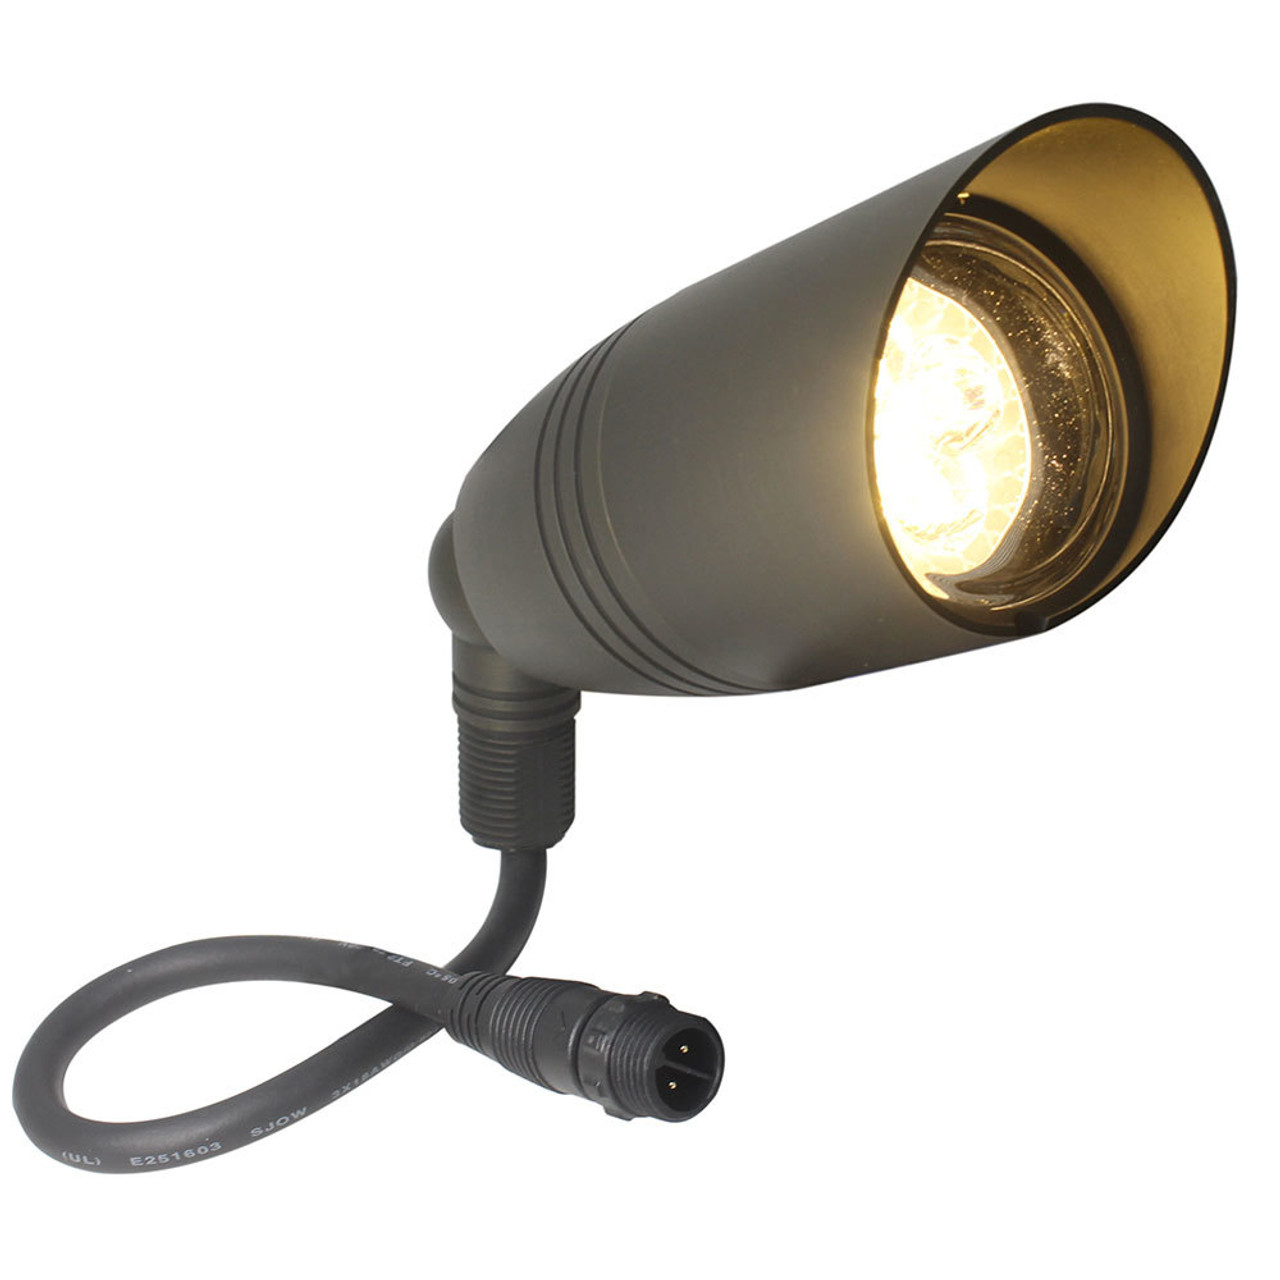 NSC LED Spotlights